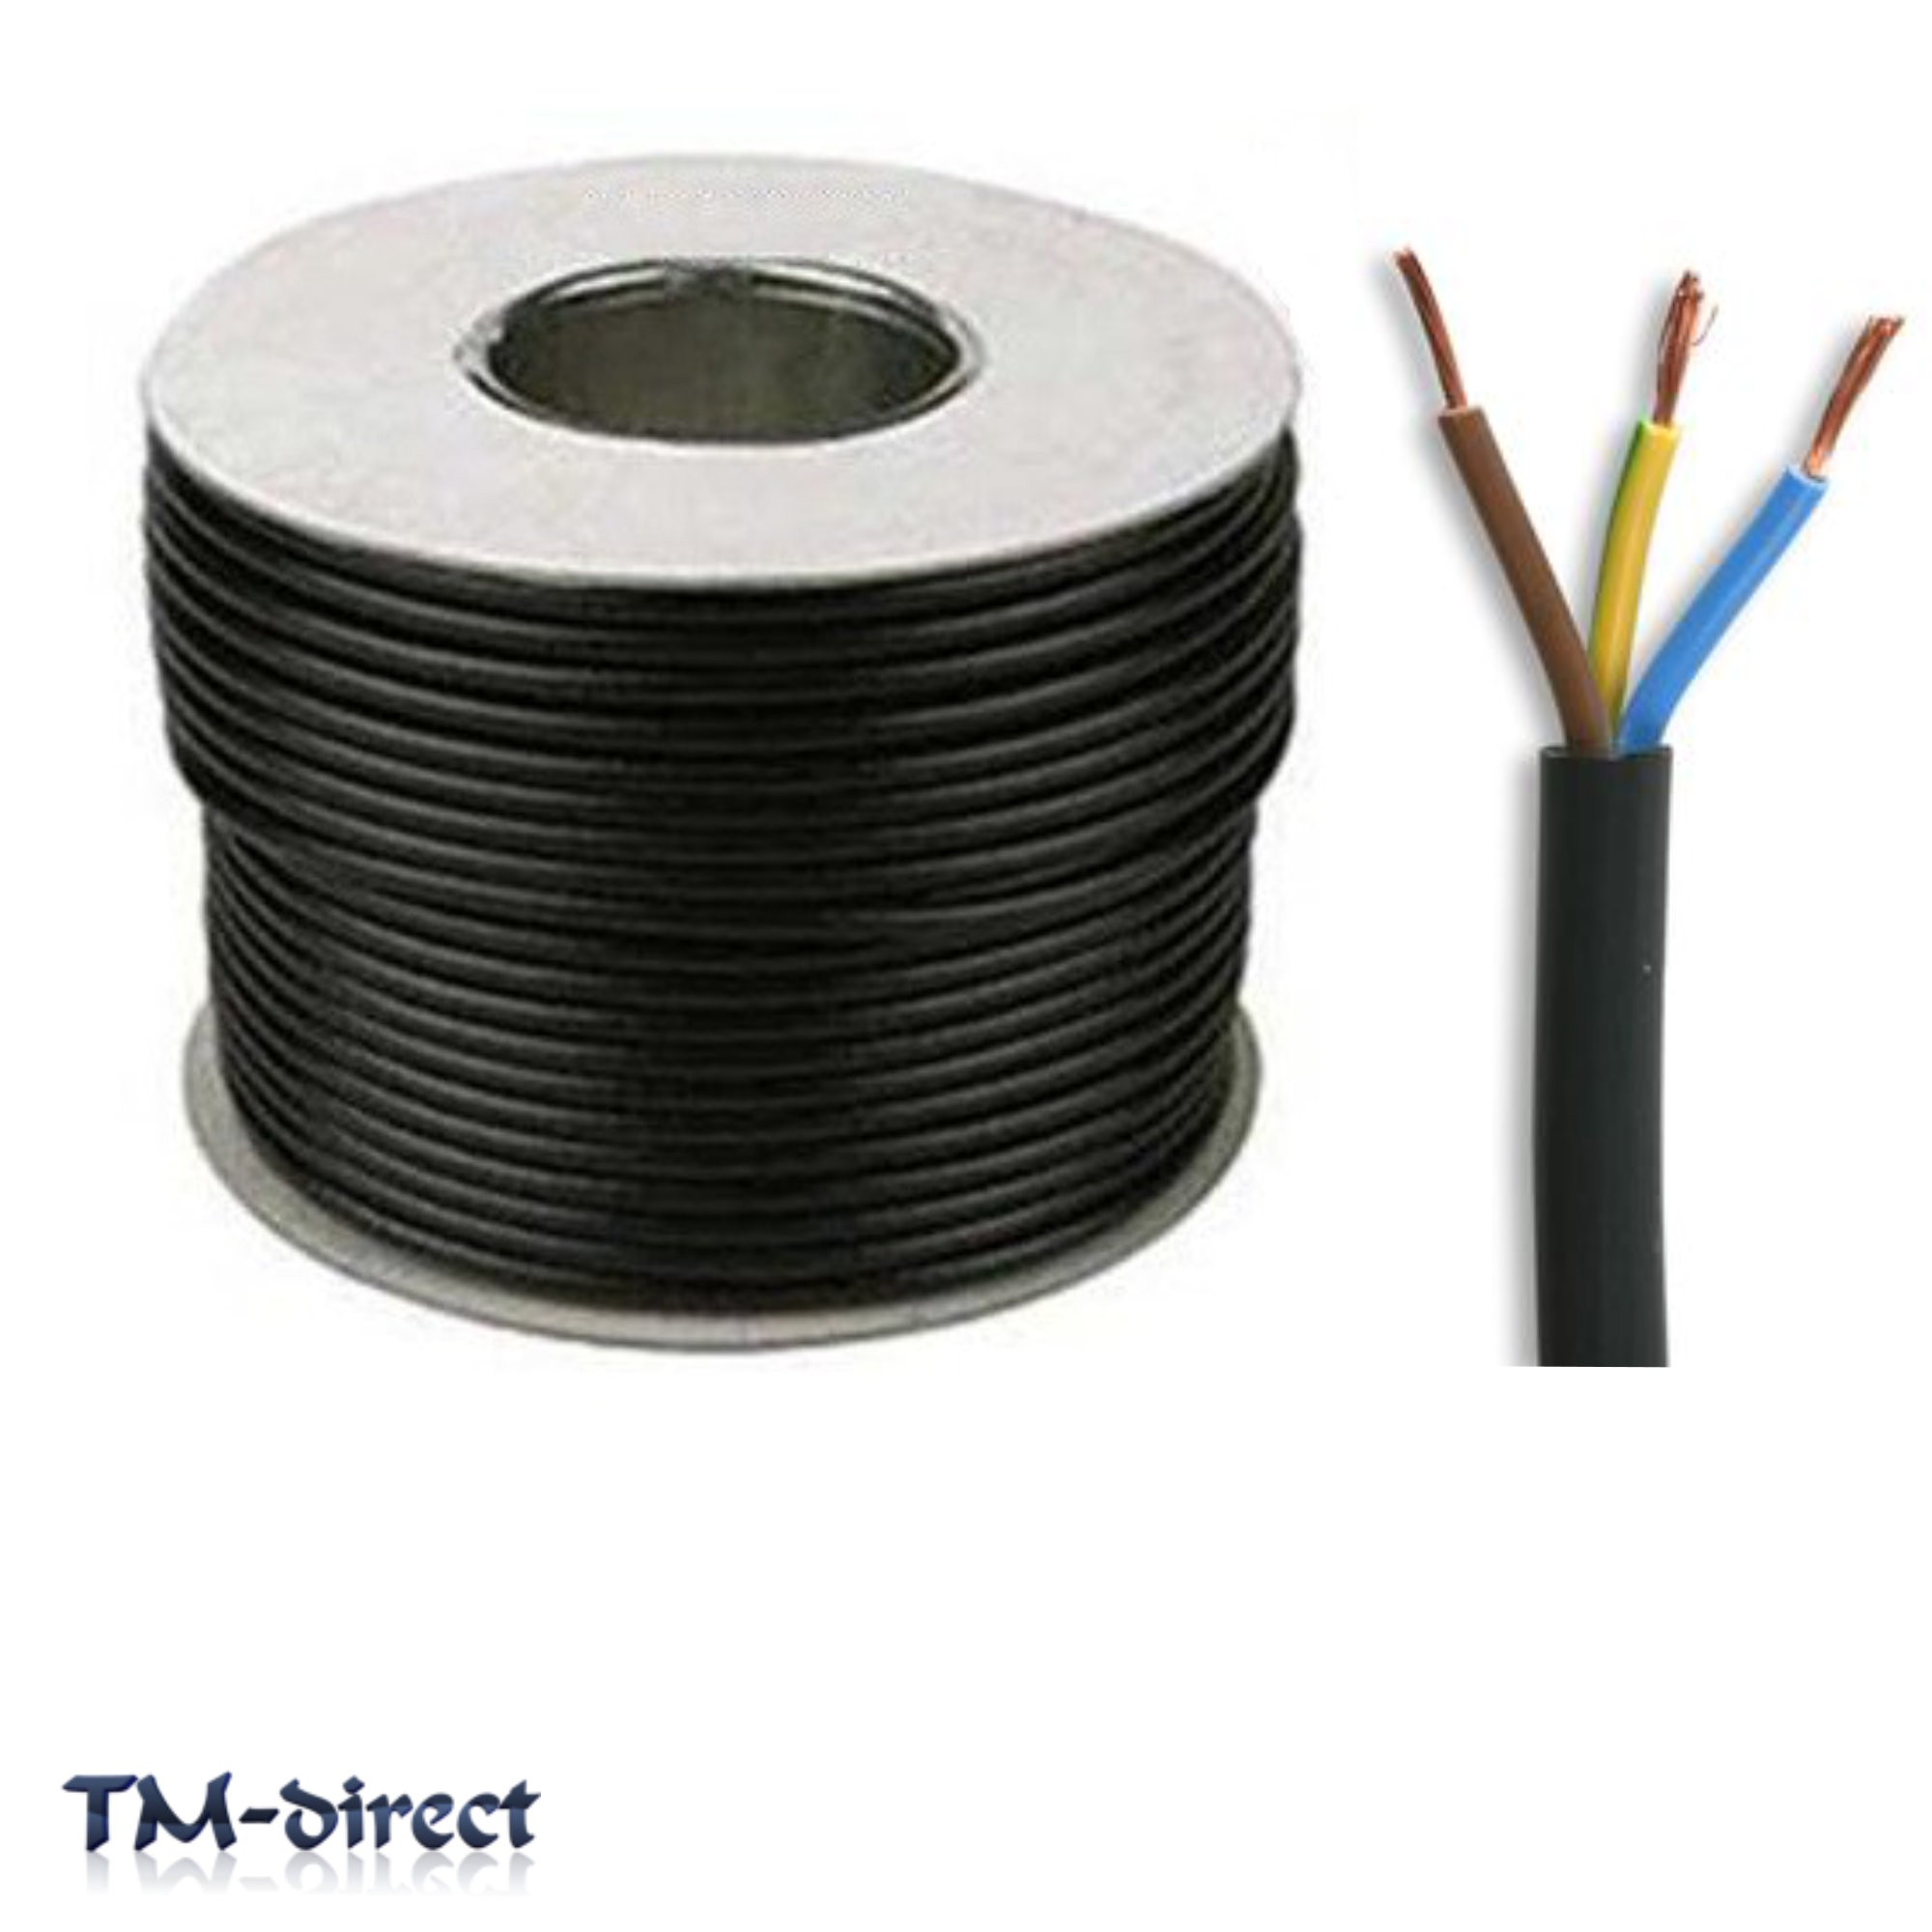 3183Y 3 Core 0.75mm Round Black Electric Cable Flex Wire BY THE METER